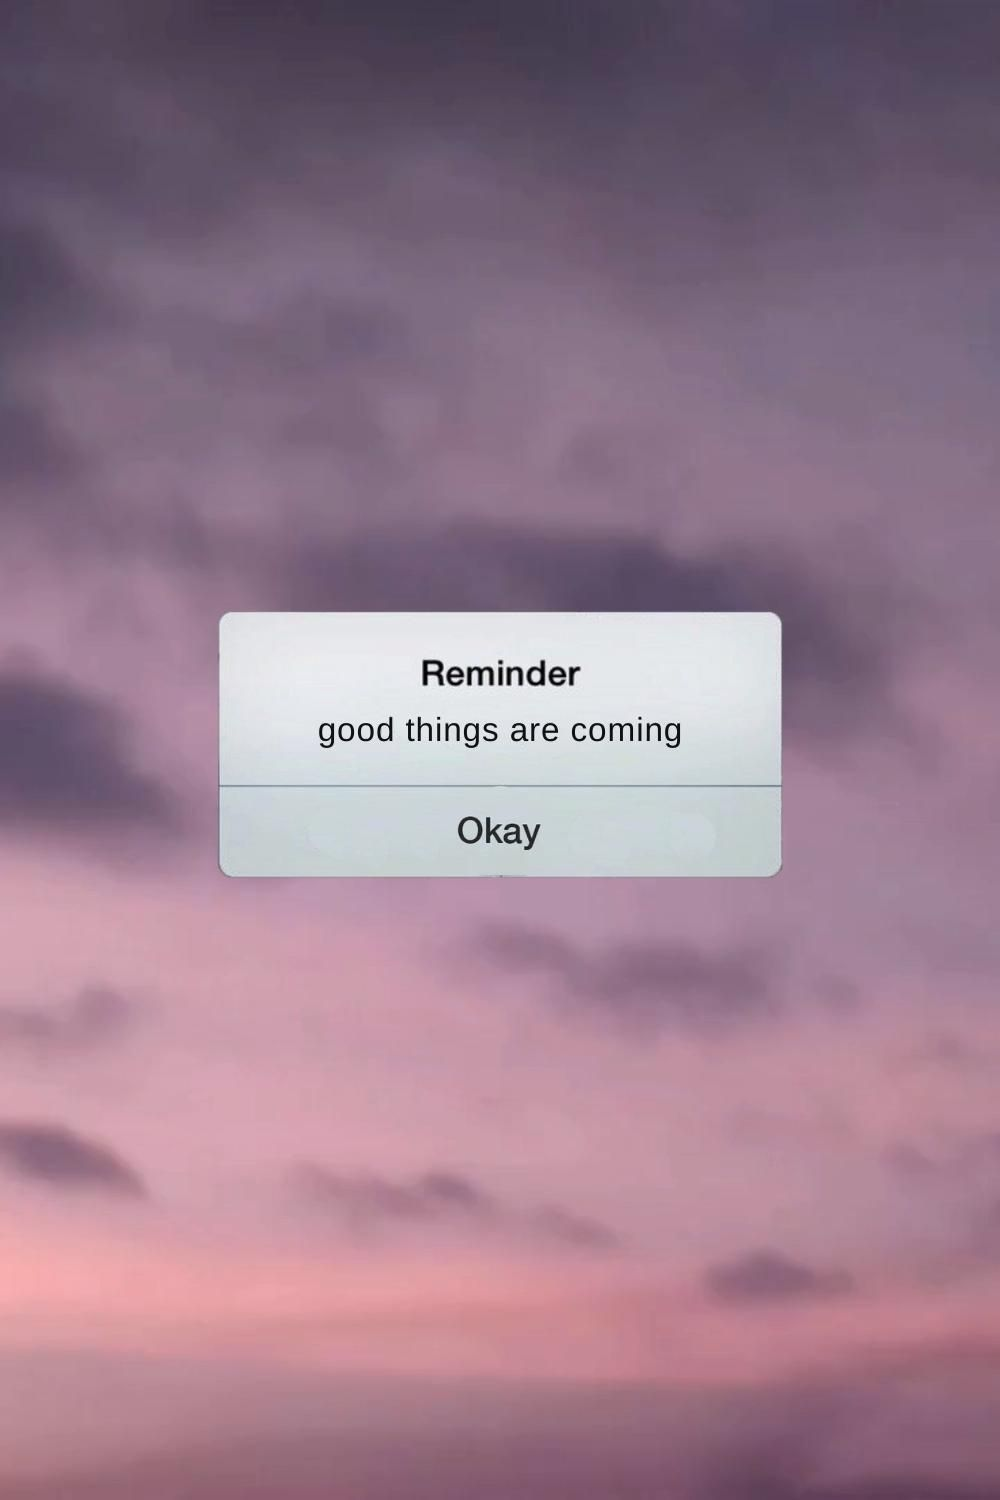 iPhone Notification Template For Personal Quotes a